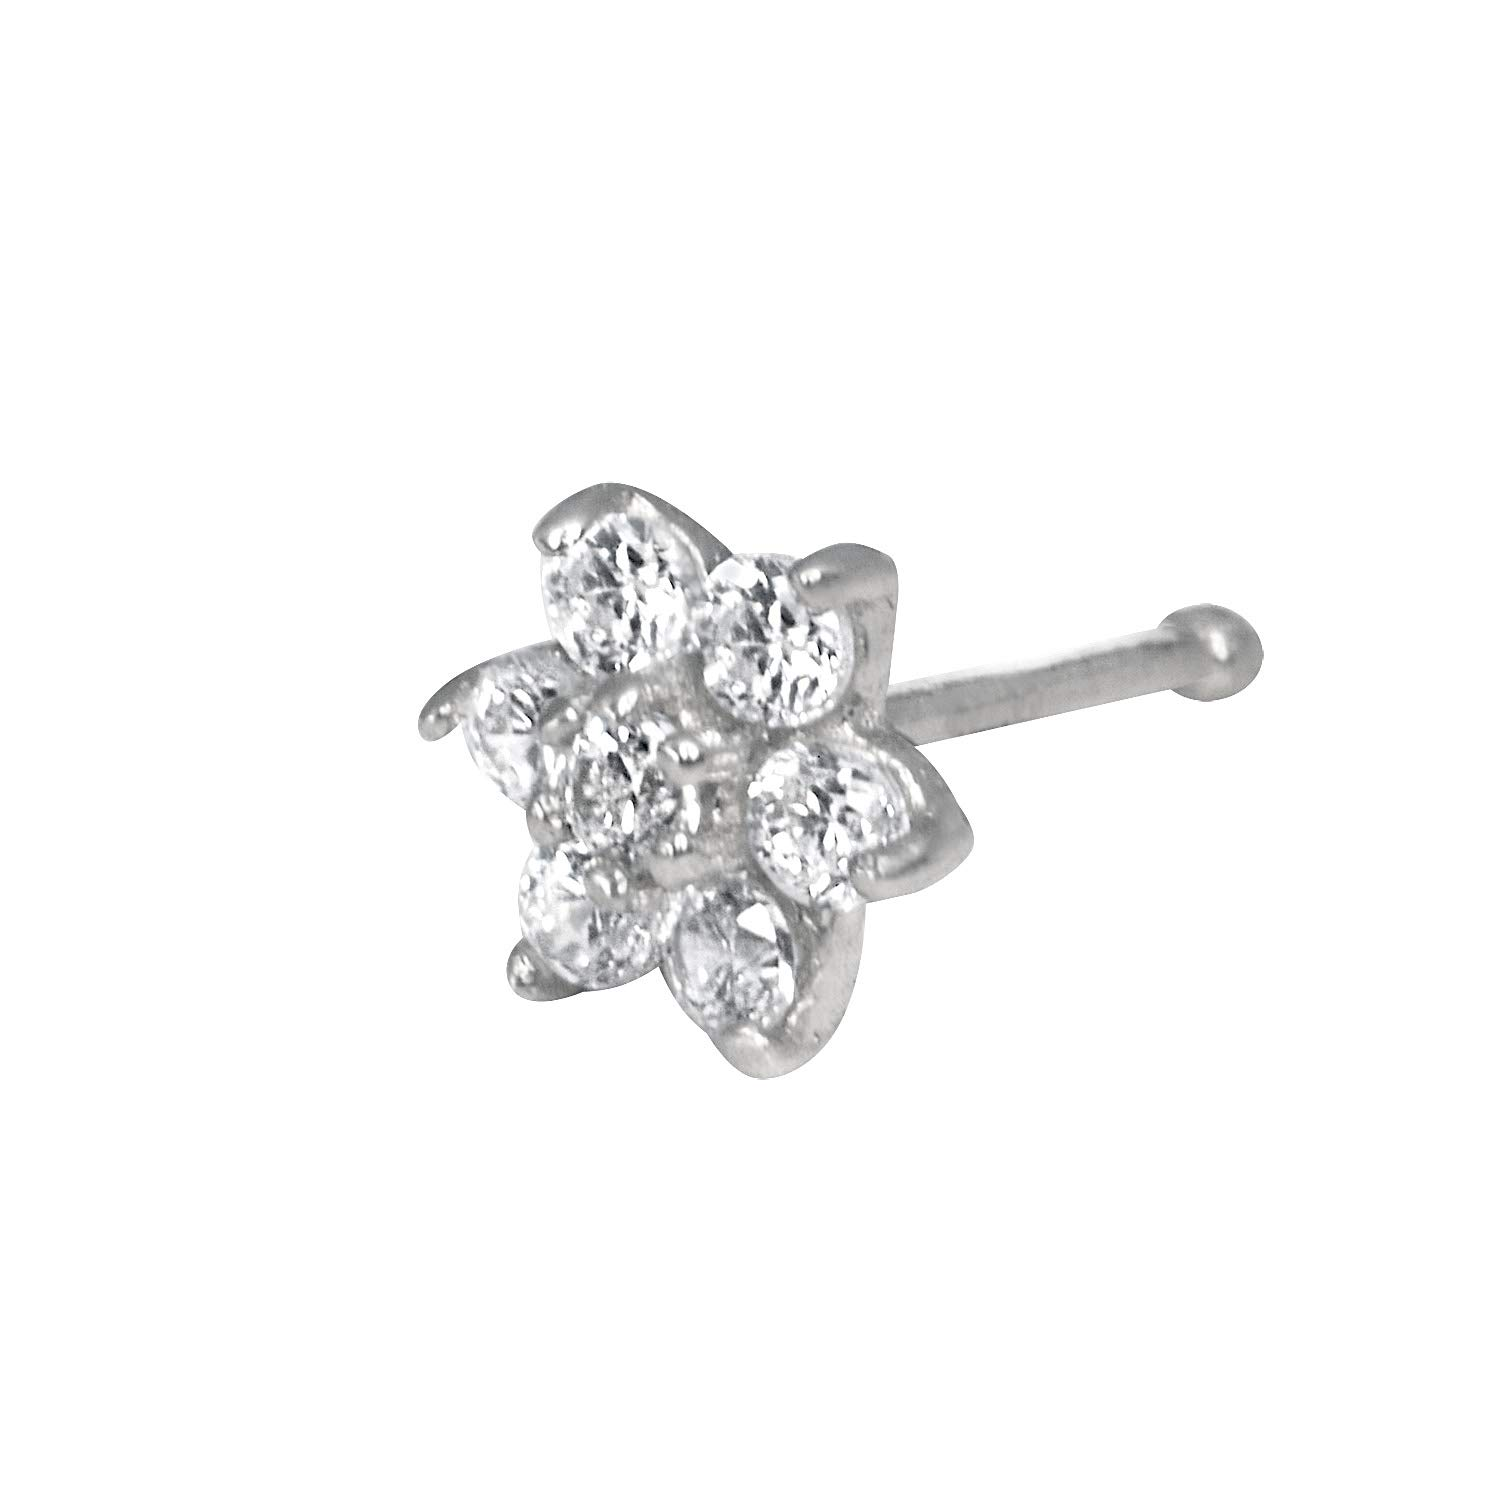 JewelryWeb Solid 14K Yellow or White Gold 4-mm 20 Gauge Cubic Zirconia Flower Nose Stud (White-Gold) by JewelryWeb